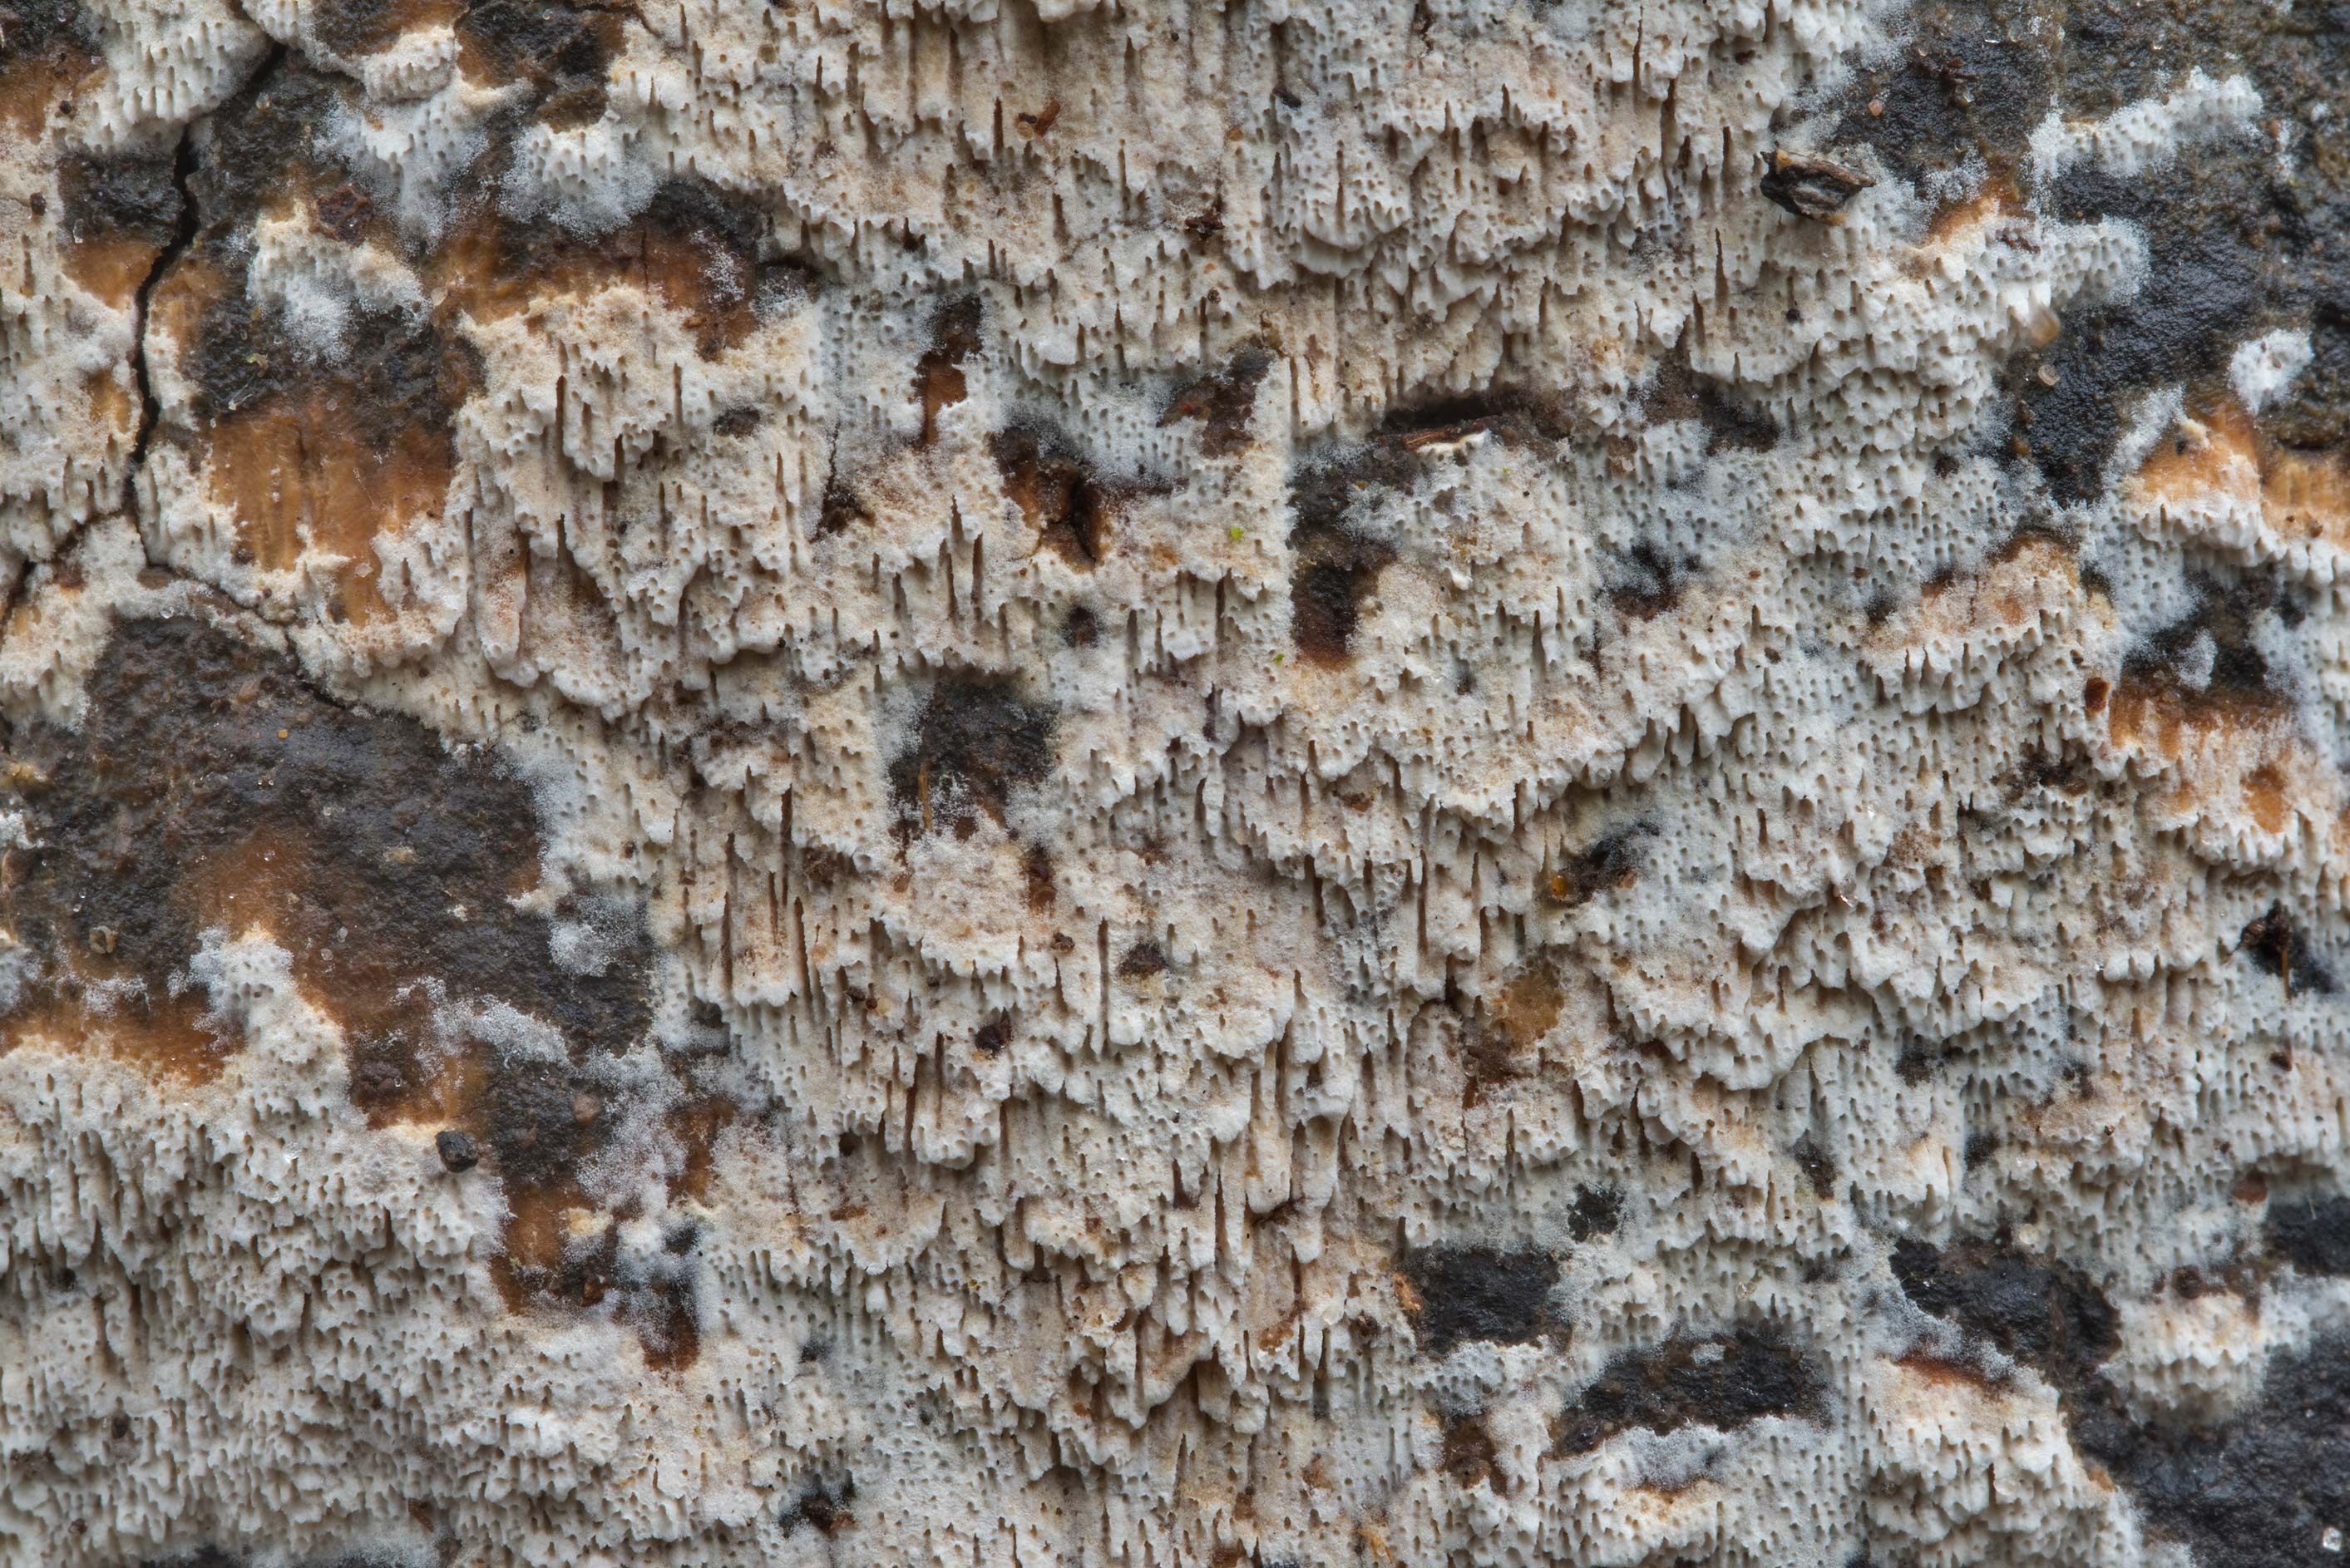 Texture of a poroid fungus on a stump on Kiwanis Nature Trail. College Station, Texas